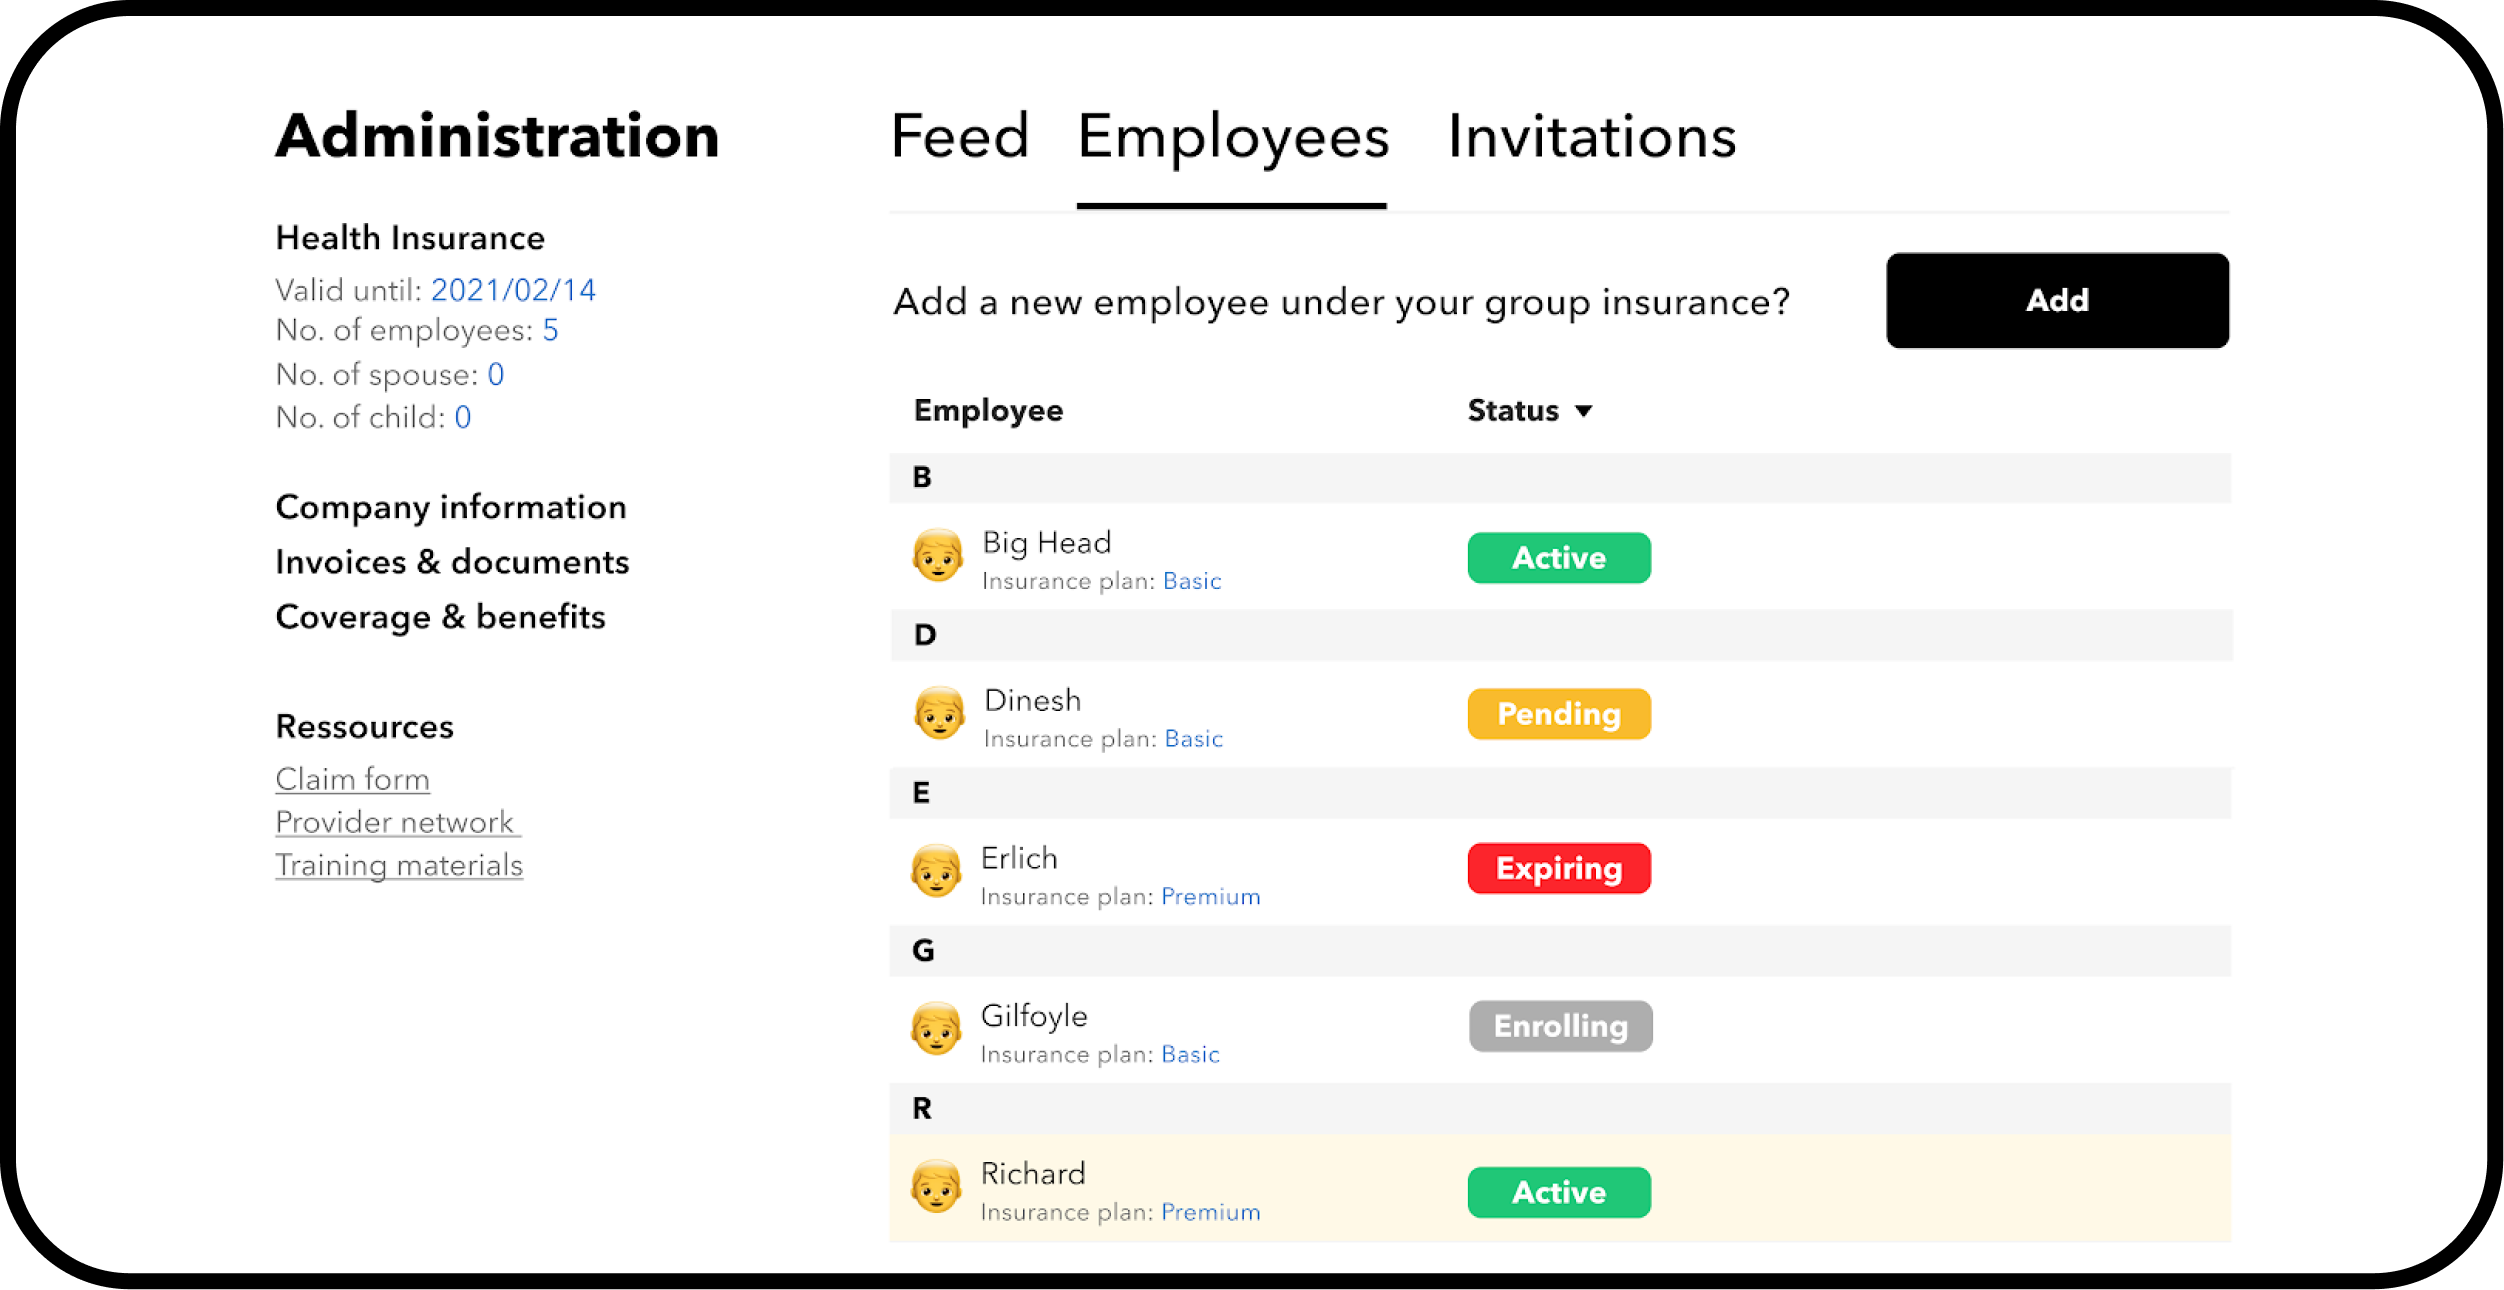 StartupCare HR medical insurance dashboard that shows employee status